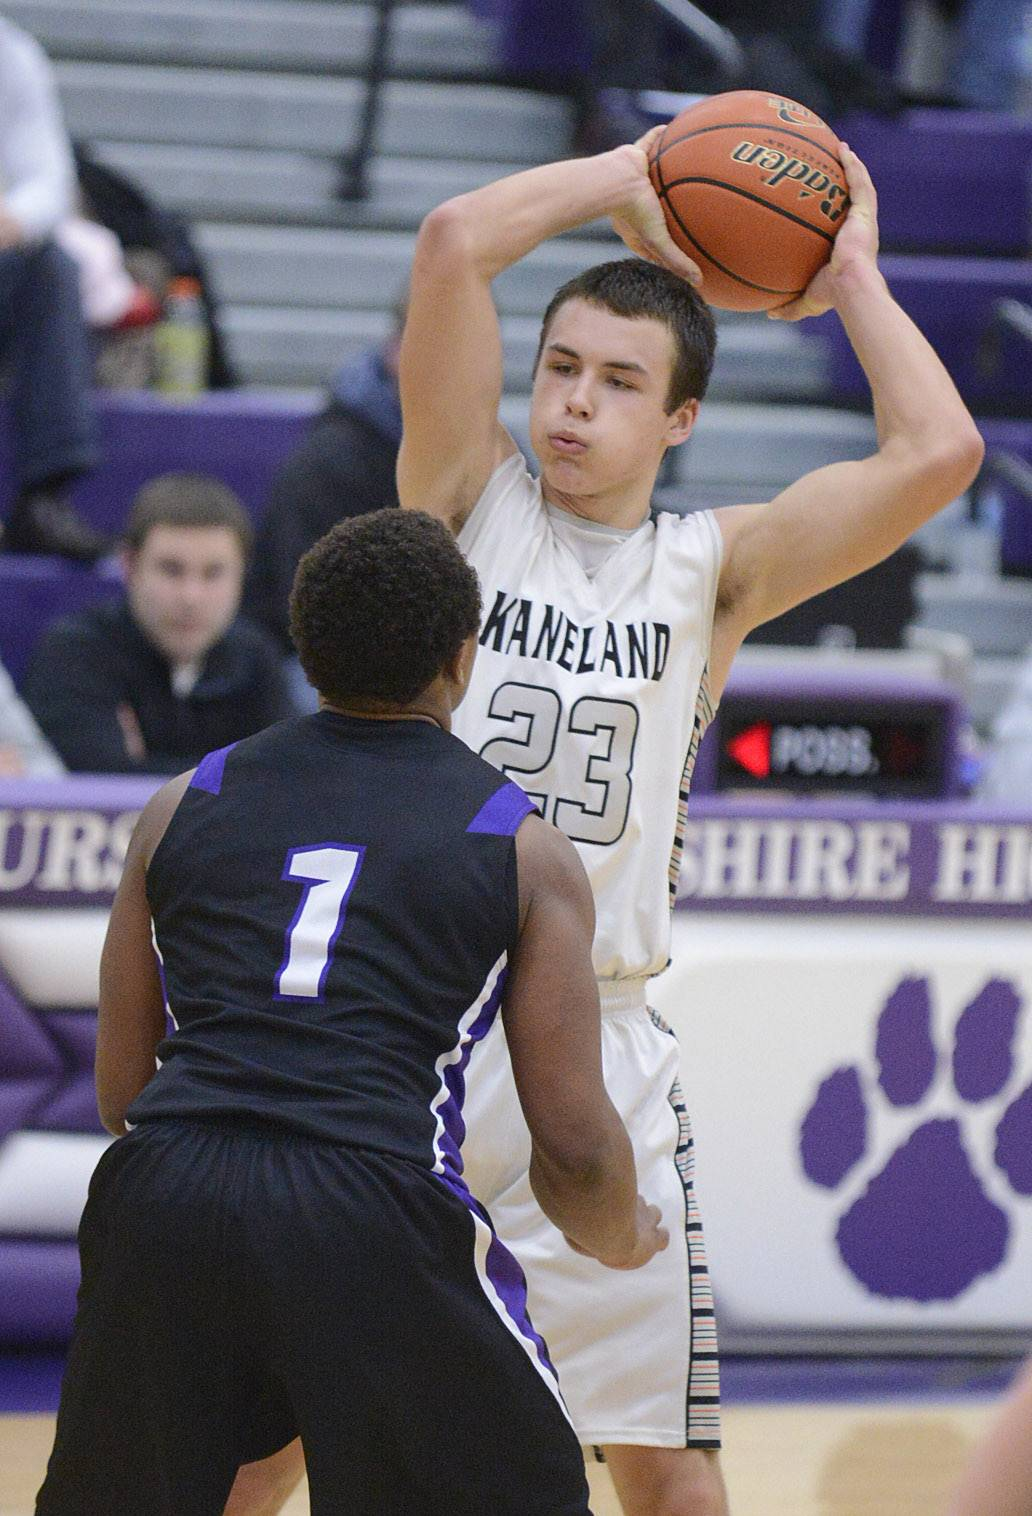 Kaneland's Tyler Carlson looks to pass over Rockford Lutheran's James Robinson in the third quarter of the Class 3A sectional game at Hampshire HIgh School on Tuesday, March 11.